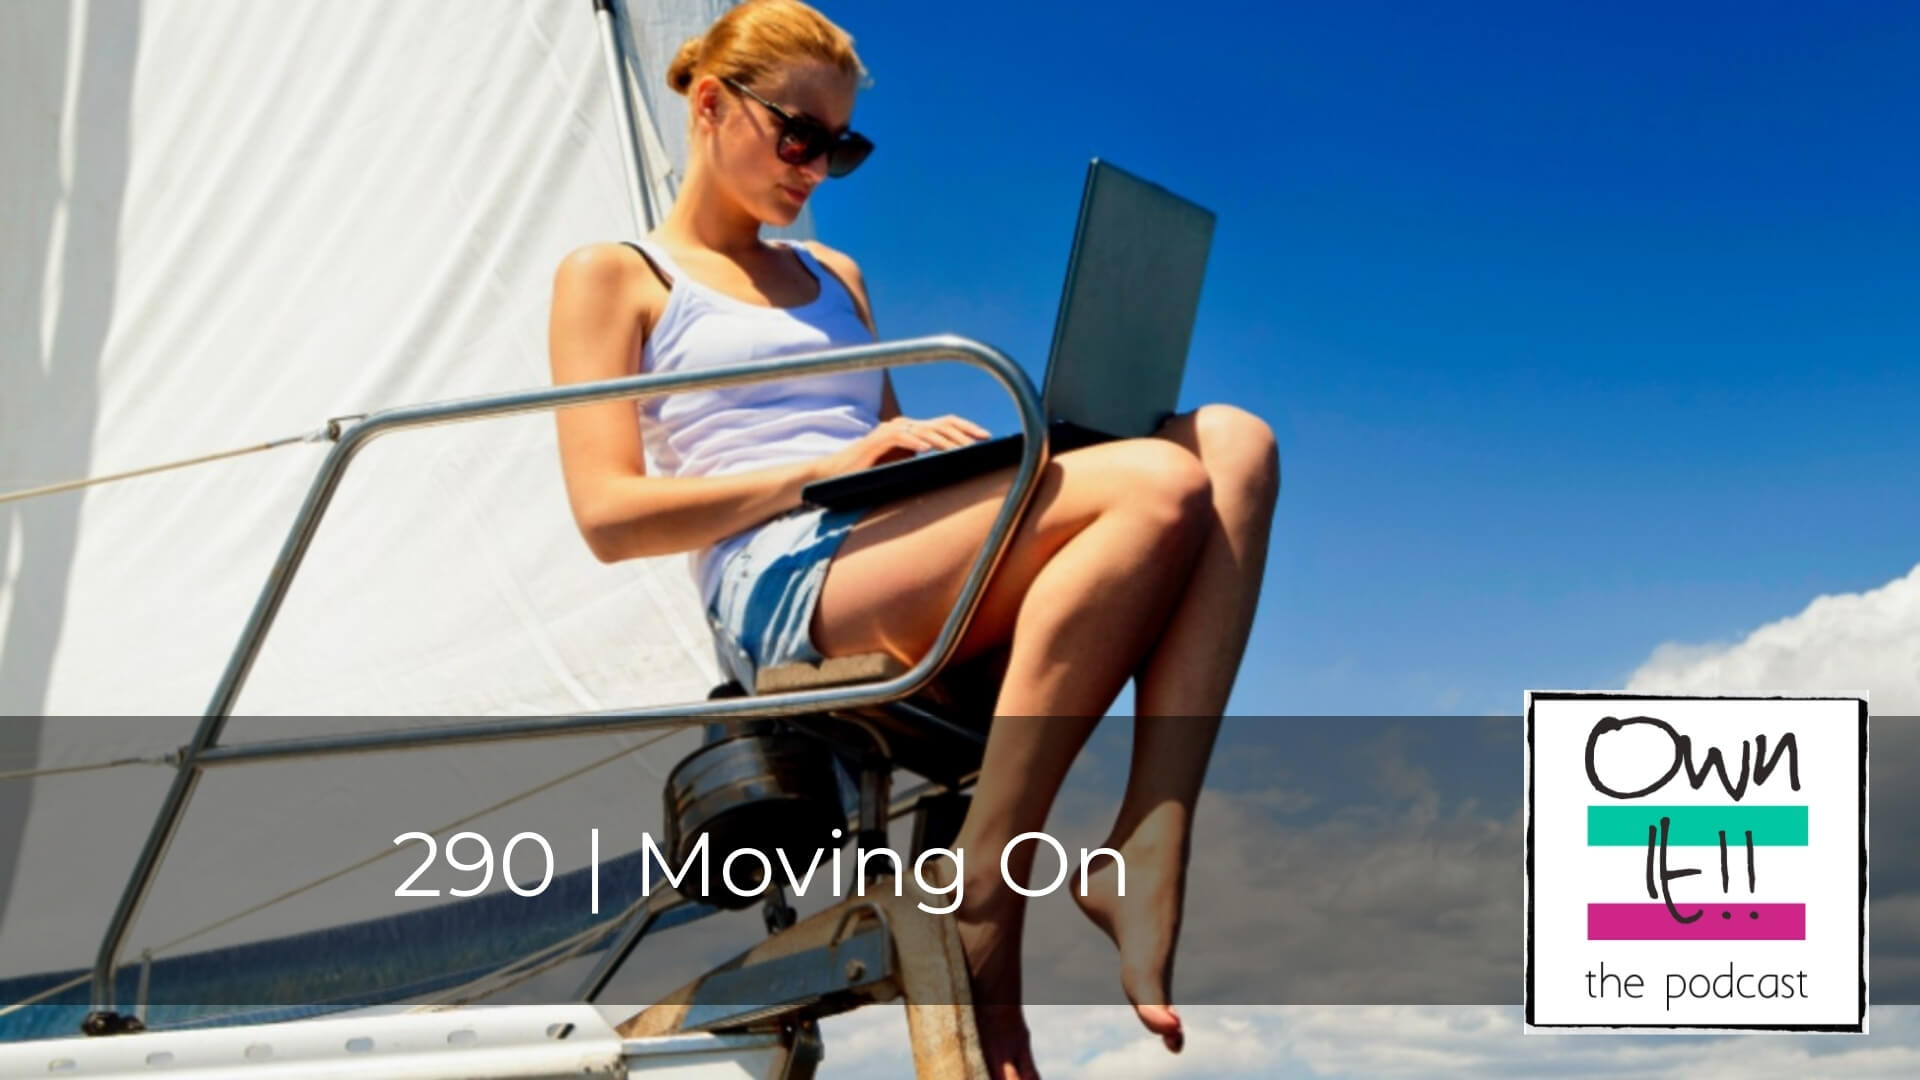 Own It! 290 | Moving On